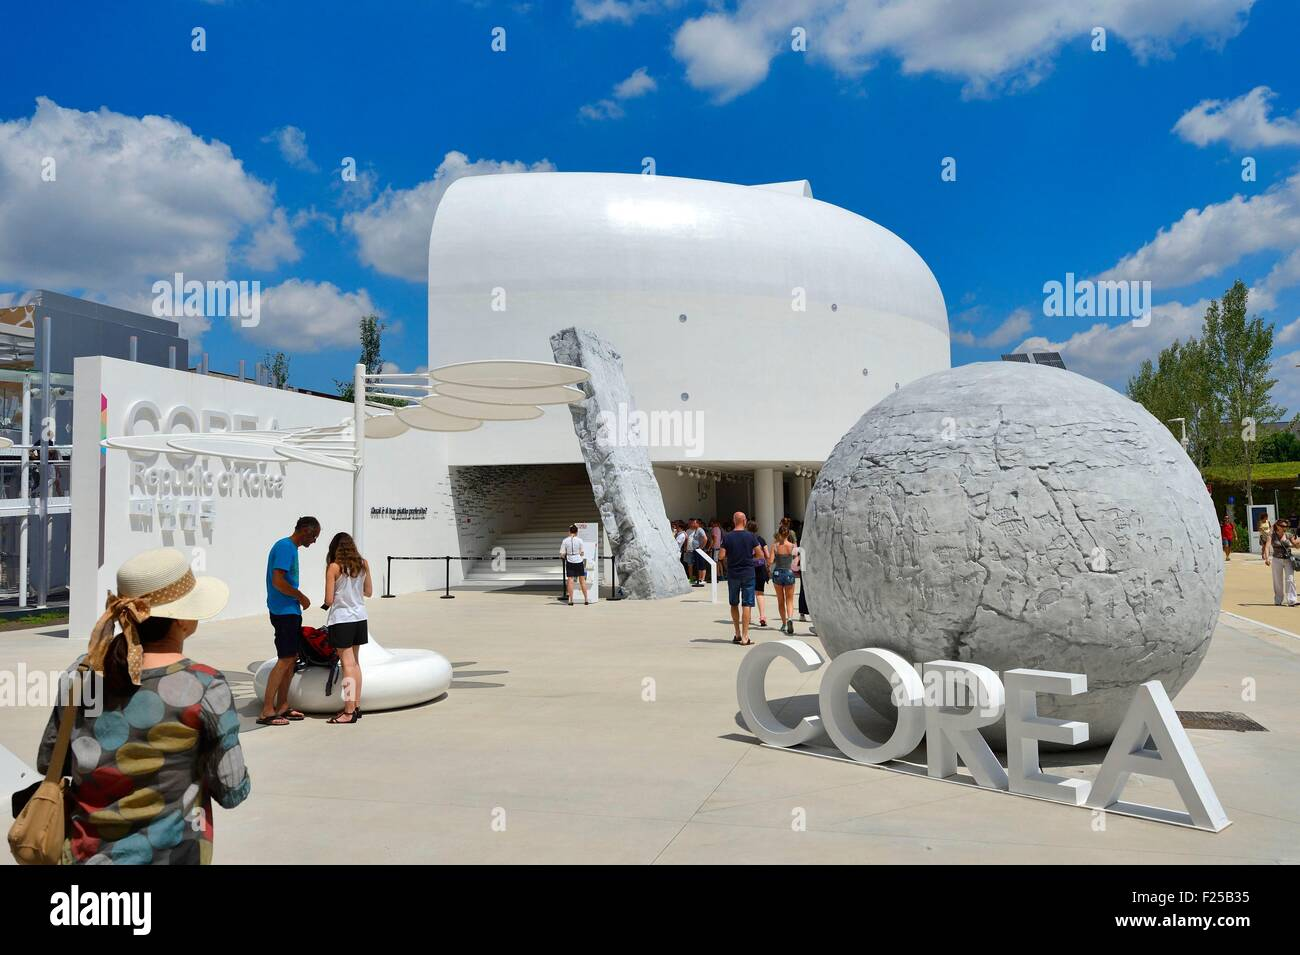 Italy, Lombardy, Milan, World Exhibition Expo Milano 2015 Decumanus, building dedicated to the Republic of Korea - Stock Image